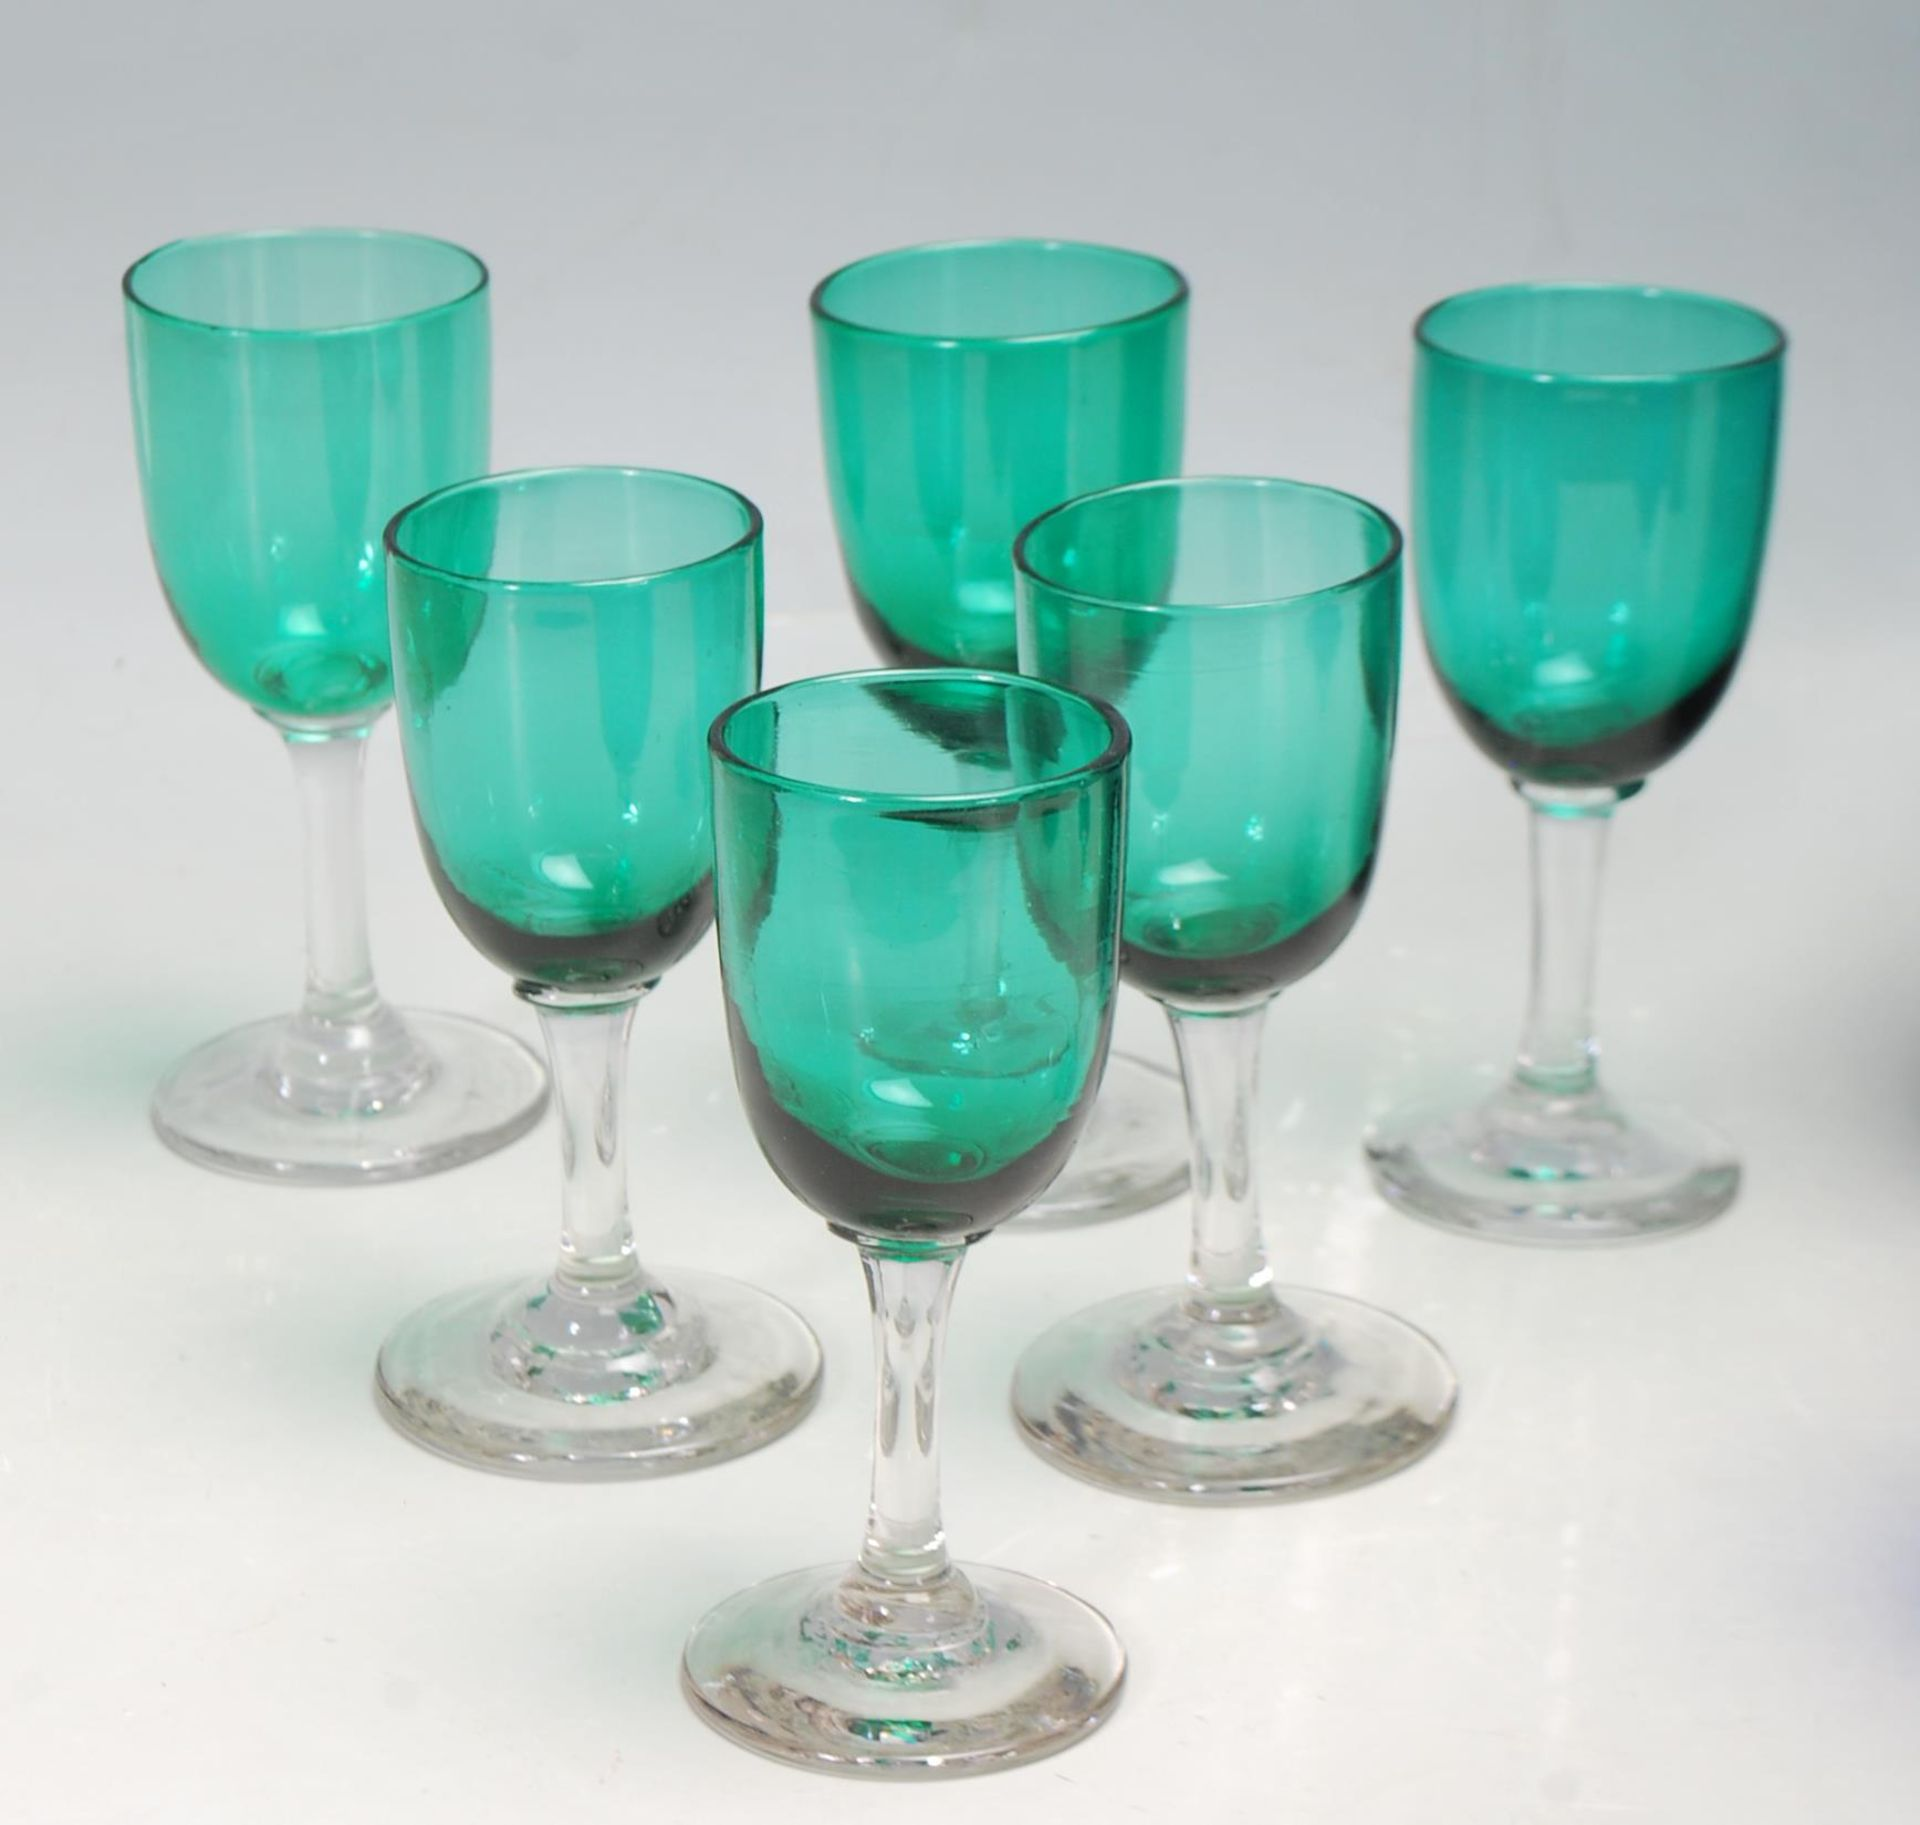 WITHDRAWN - COLLECTION OF VINTAGE MID 20TH CENTURY GLASS - Image 6 of 8